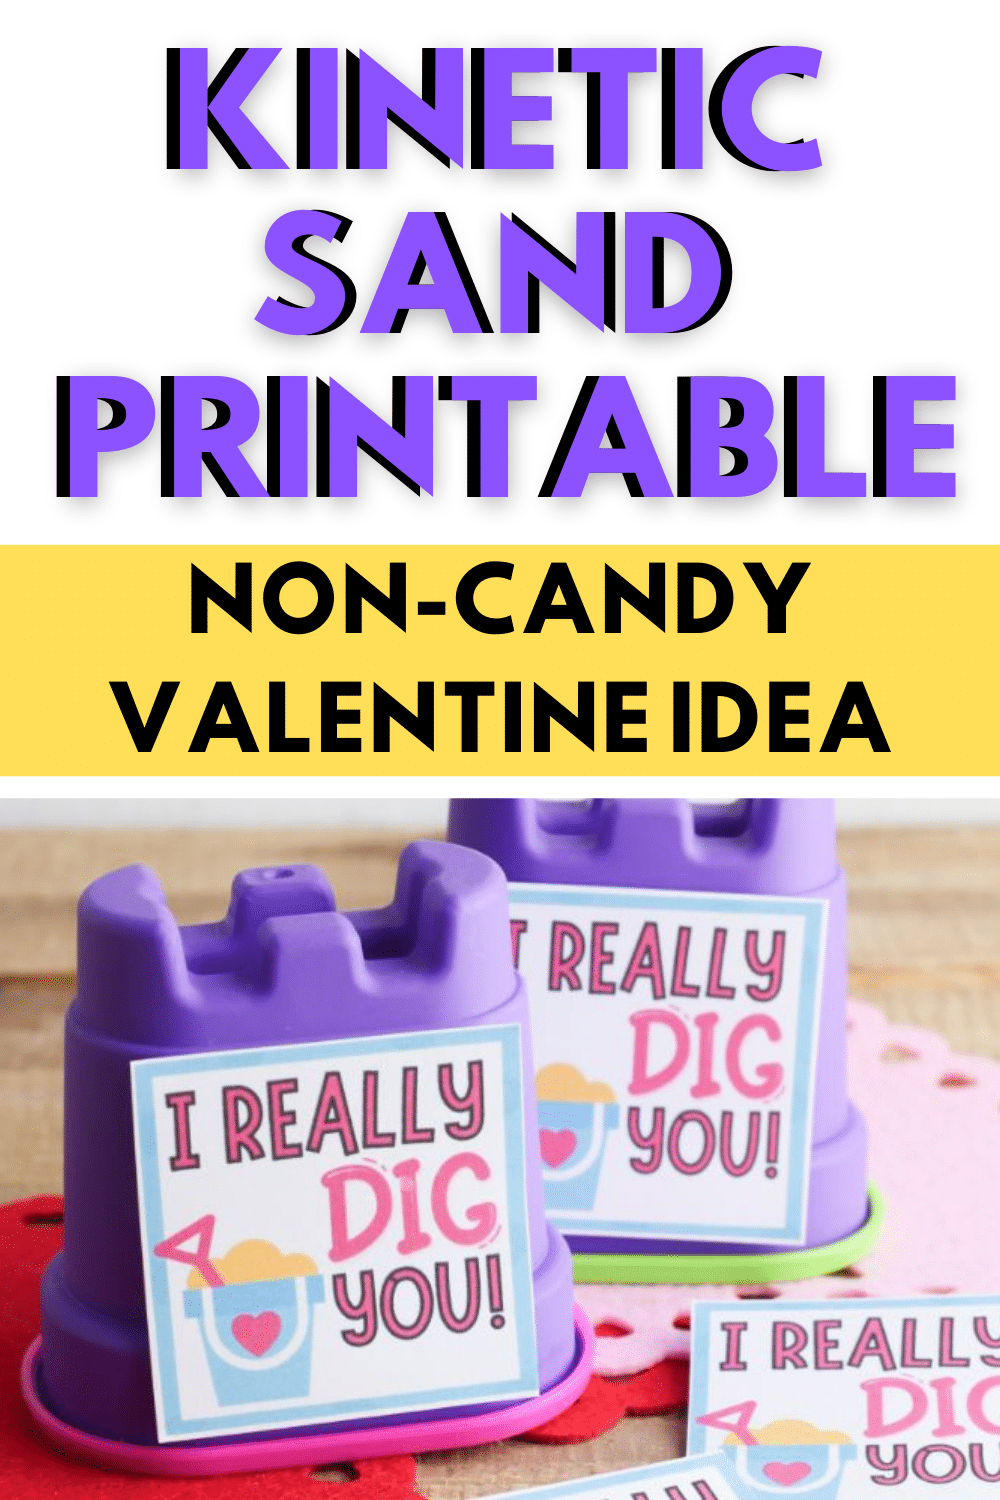 The kids are going to love this Kinetic Sand Valentine printable! This fun Valentine's Day printable makes a fun and unique gift! #valentinesday #valentine #kineticsand #freeprintable #forkids via @wondermomwannab